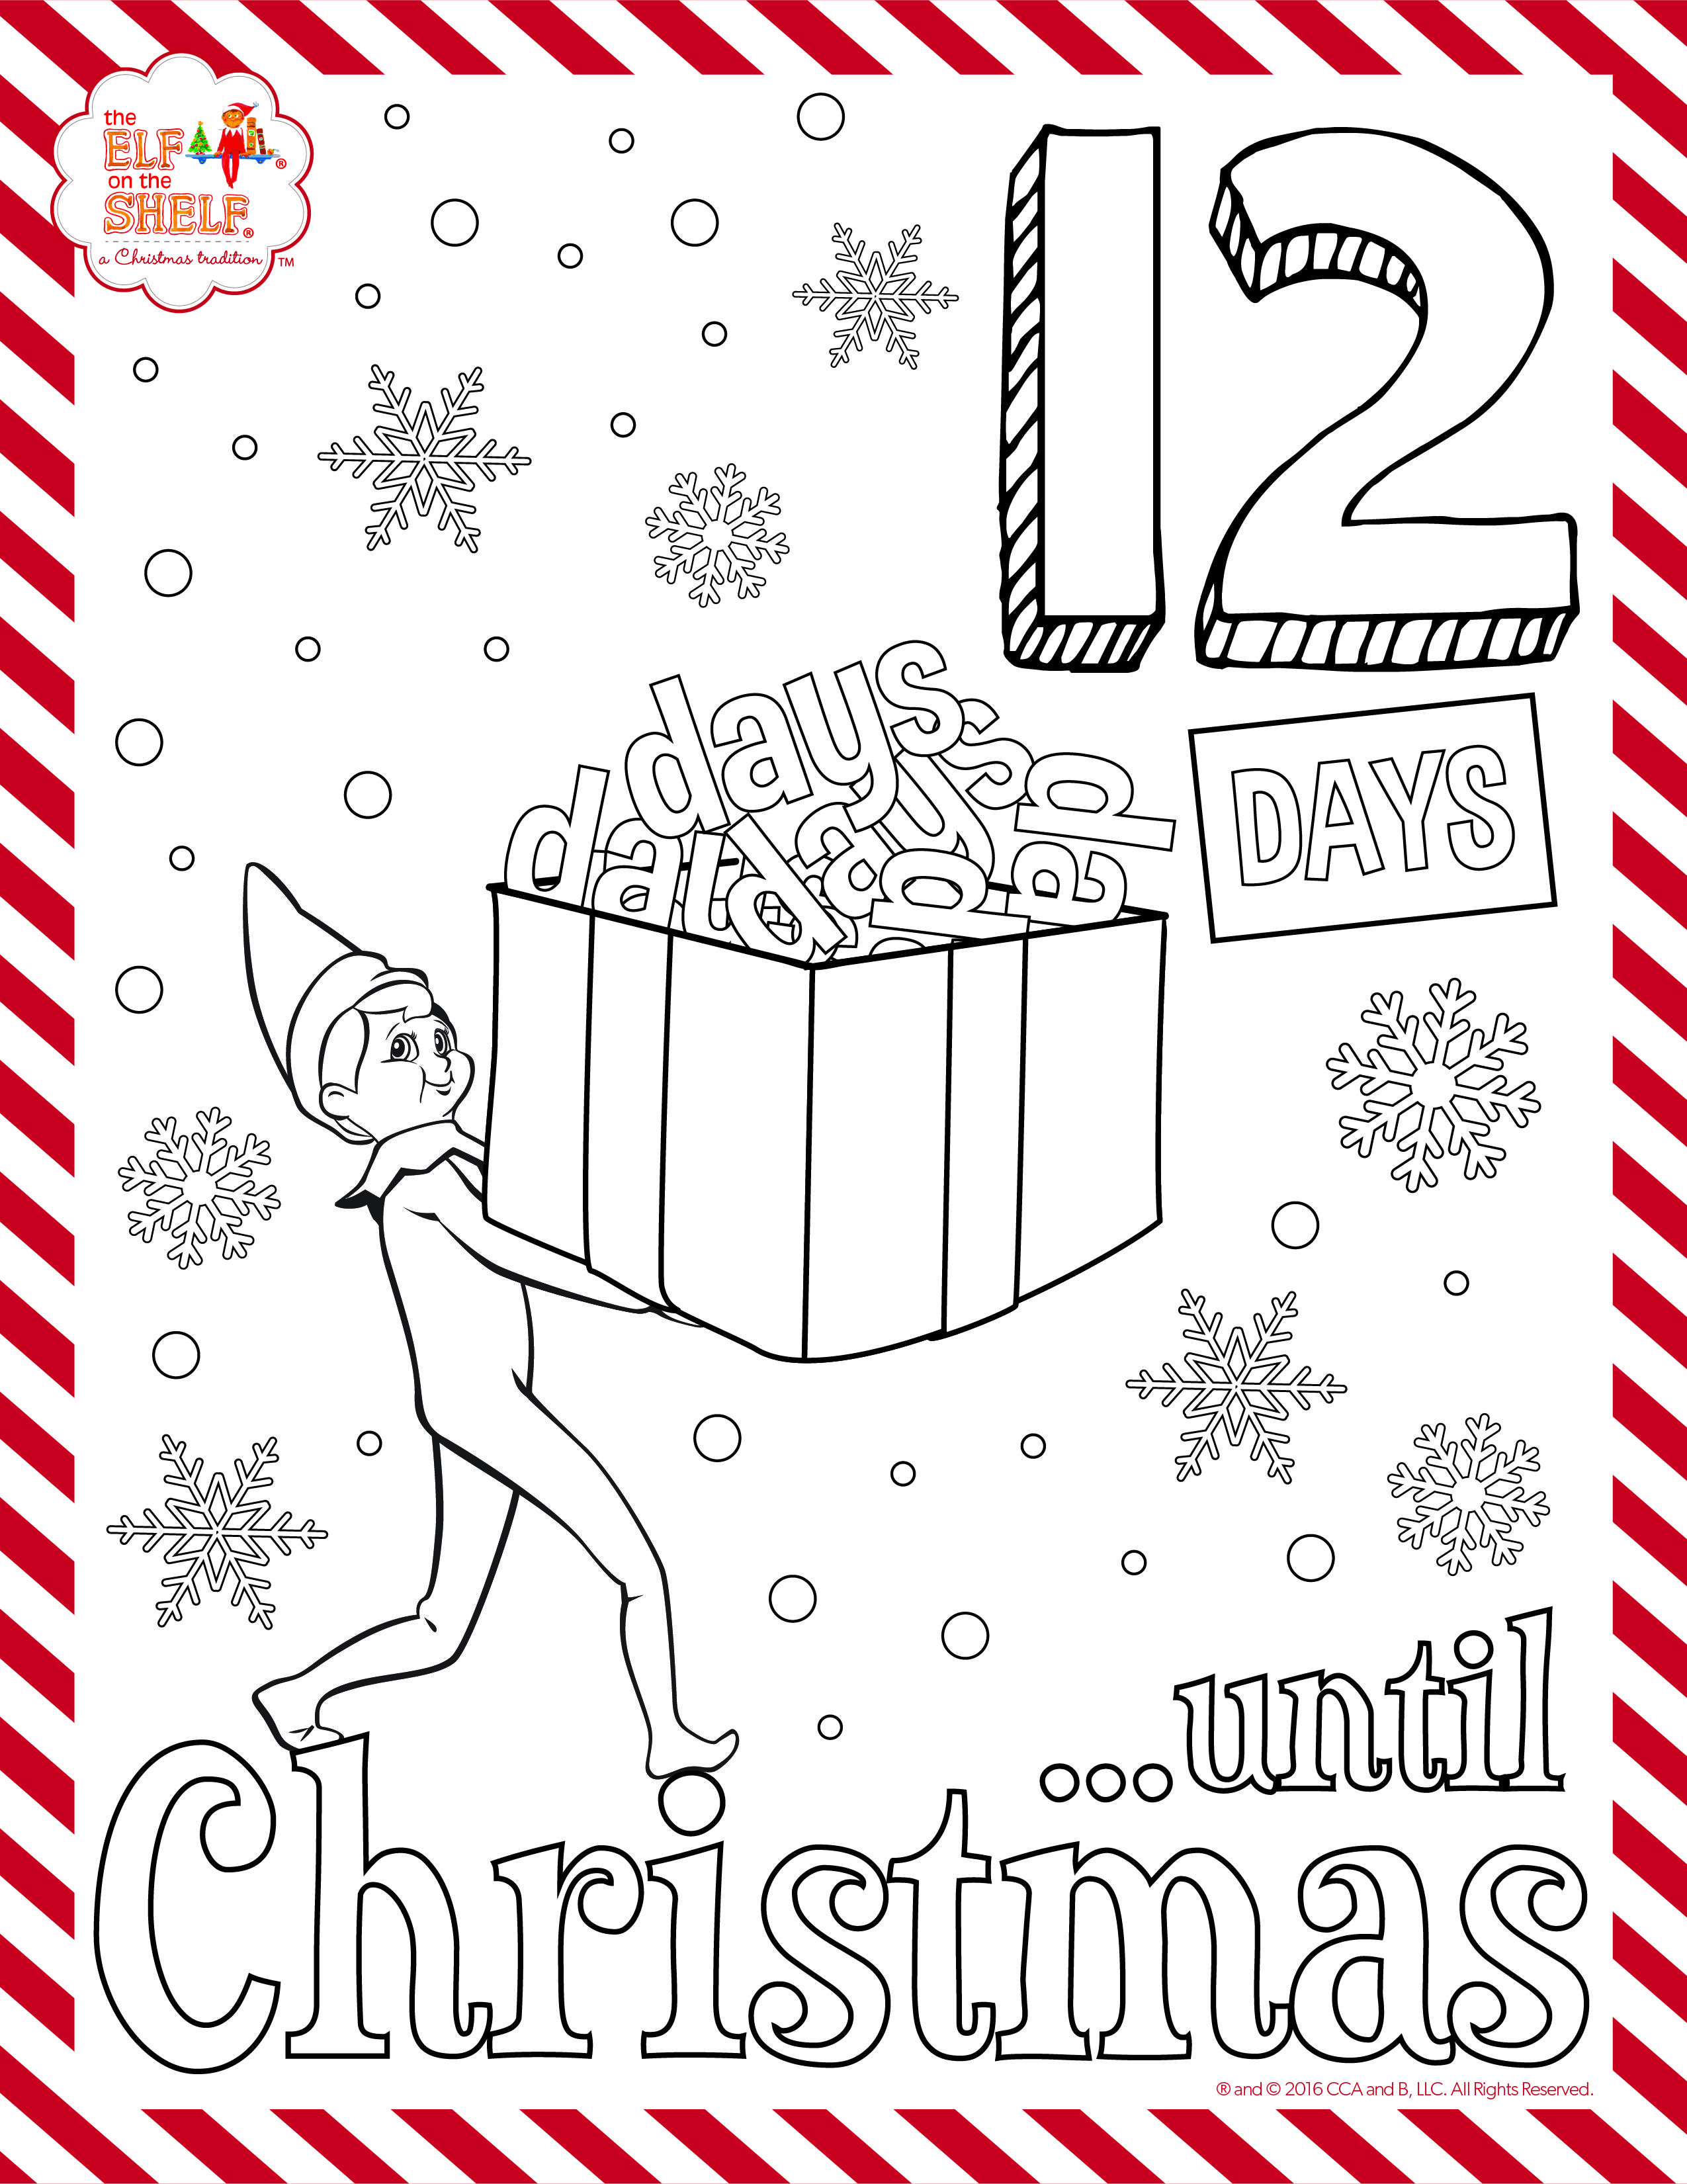 Santa S Grotto Colouring Pages With Http Www Tetonsports Com Giveaway Contest Htm WLbewBIrJhE In 2018